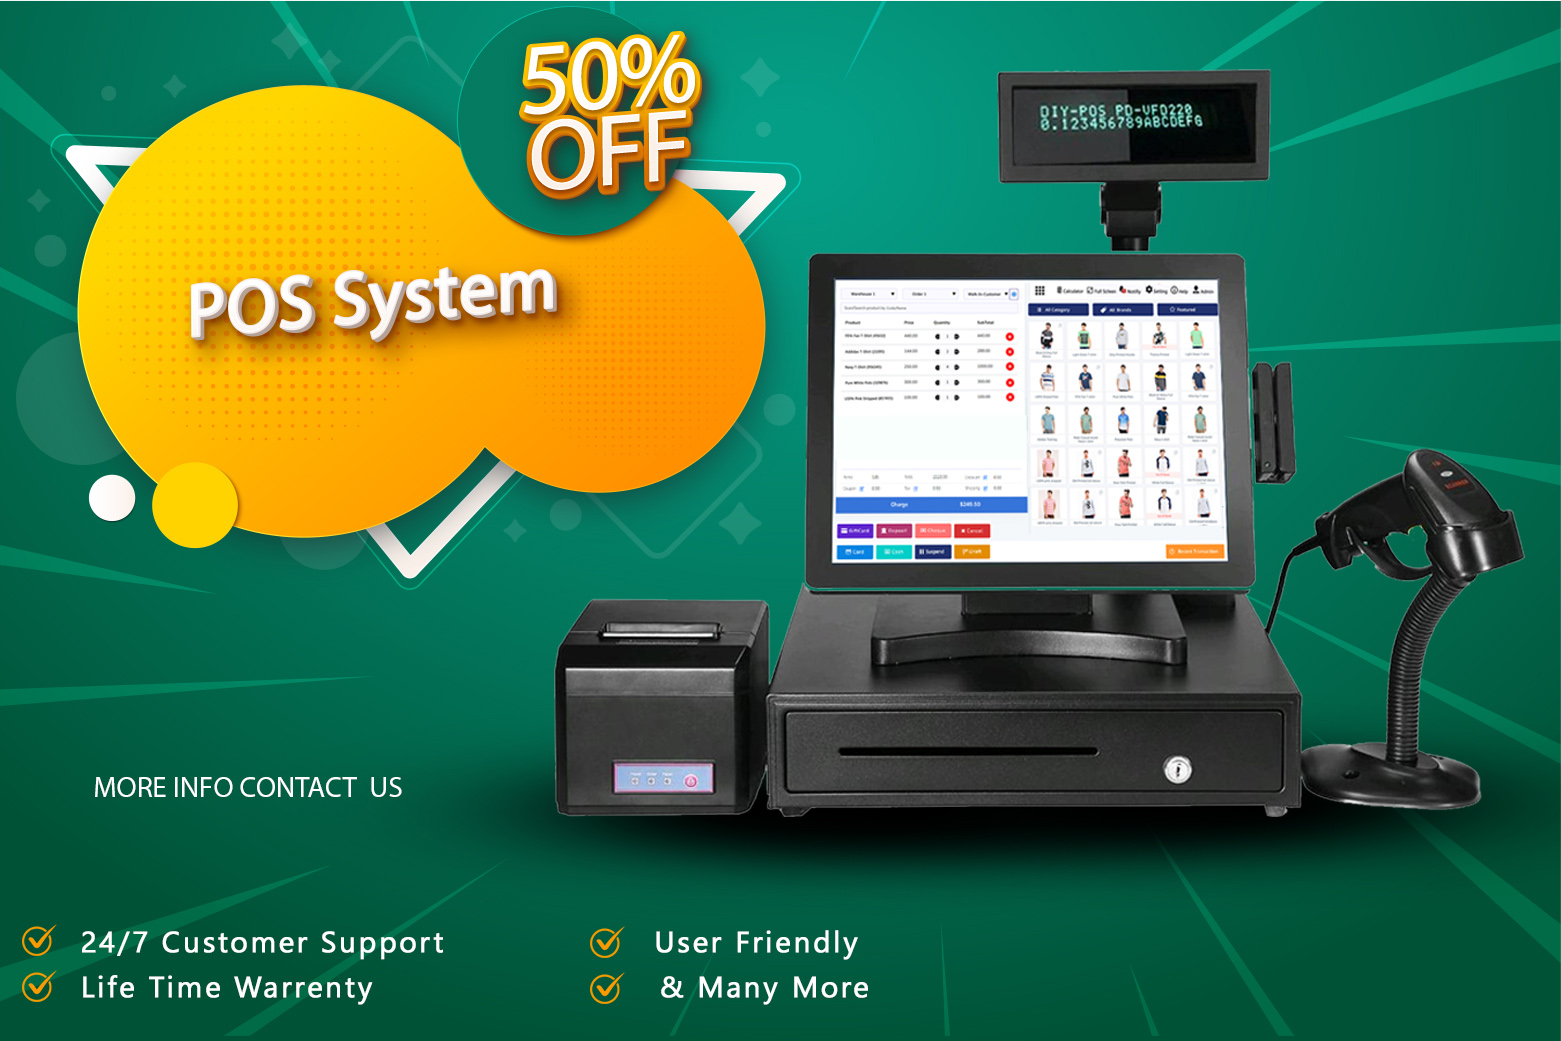 Cloud Based POS & Stork Management System Point of Sale System